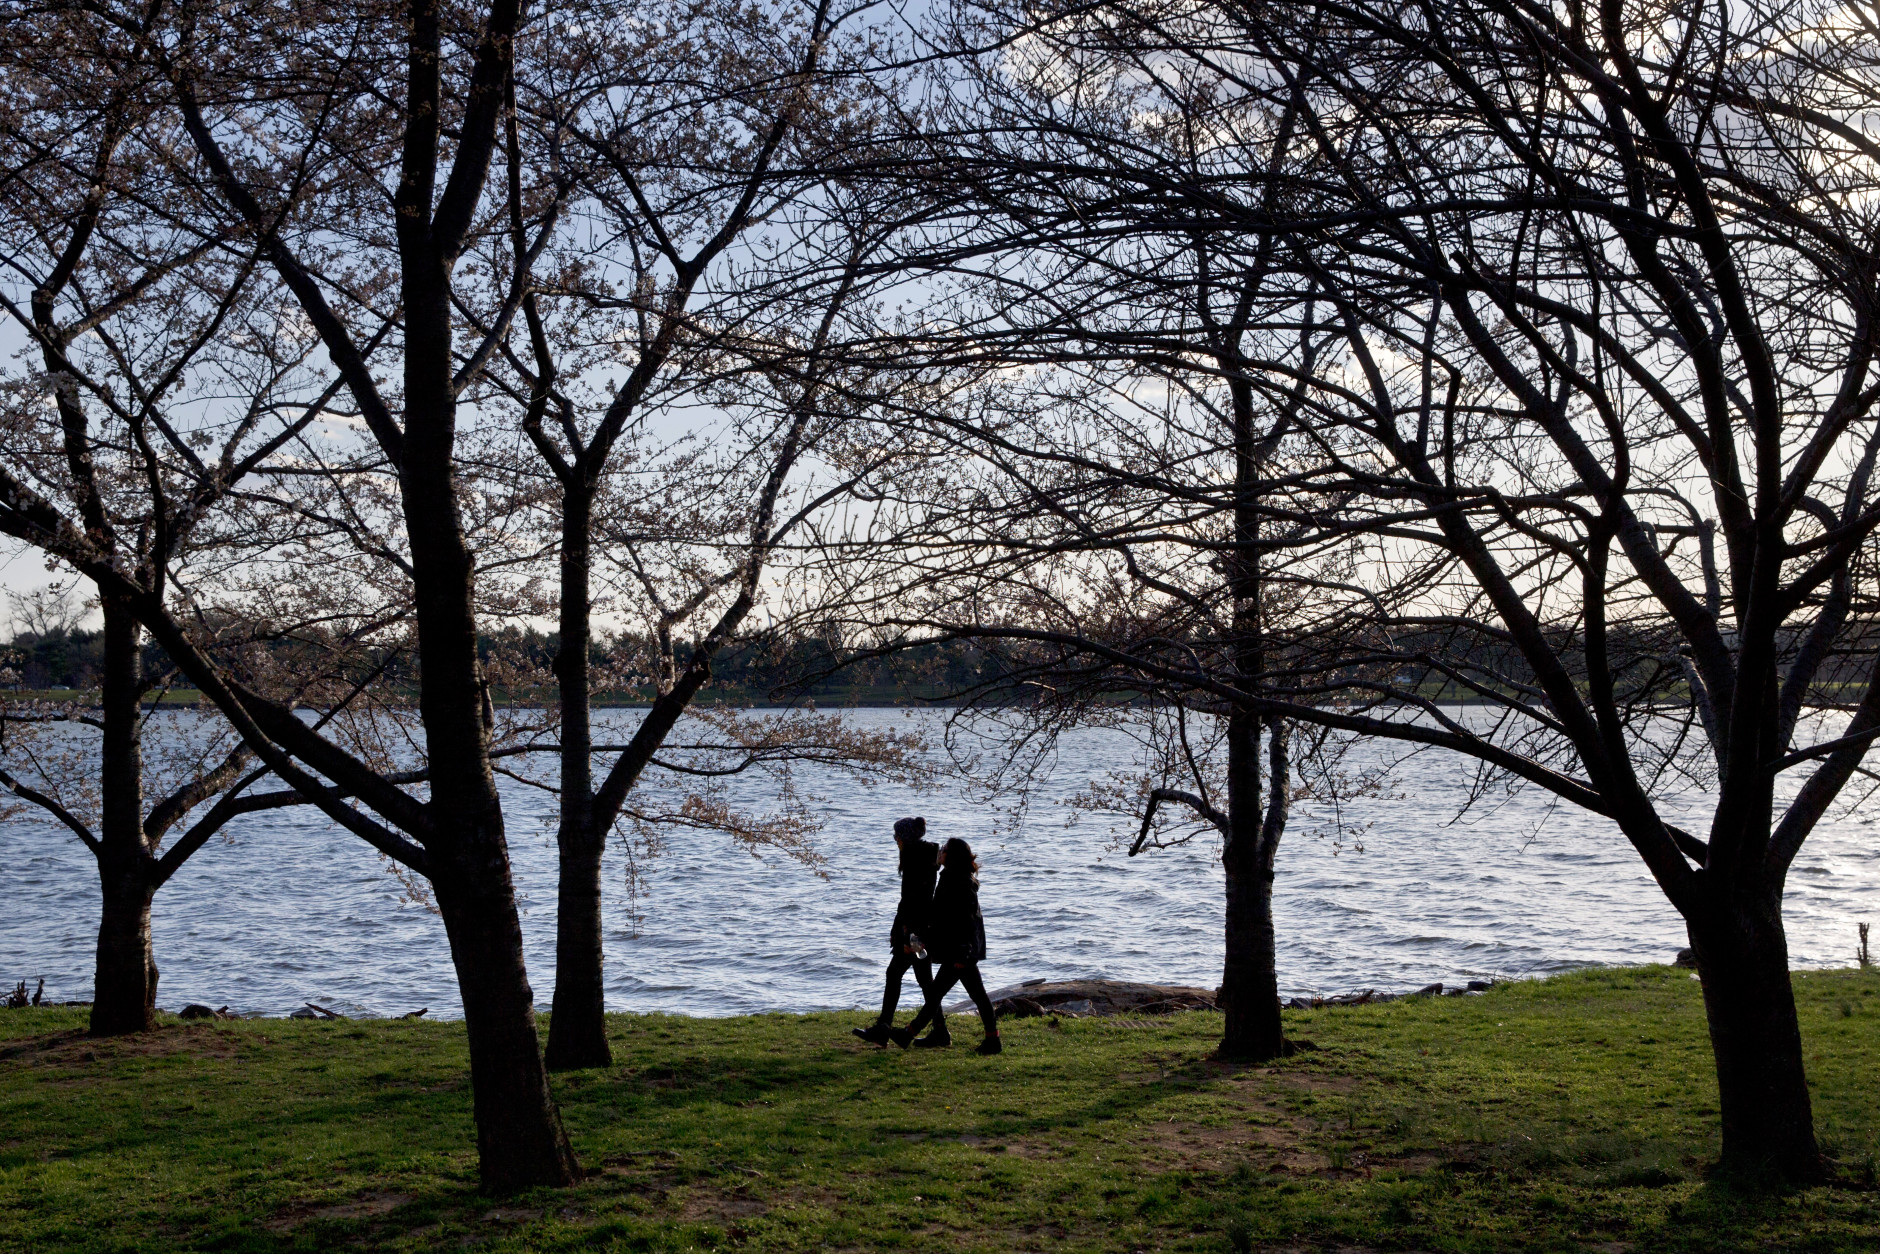 Two women are silhouetted by the Potomac River as they walk past cherry blossom trees that are not quite in bloom near the tidal basin in Washington, Monday, March 21, 2016. The cherry blossom trees are expected to hit peak bloom later this week, despite current cold temperatures, according to the National Park Service. (AP Photo/Jacquelyn Martin)